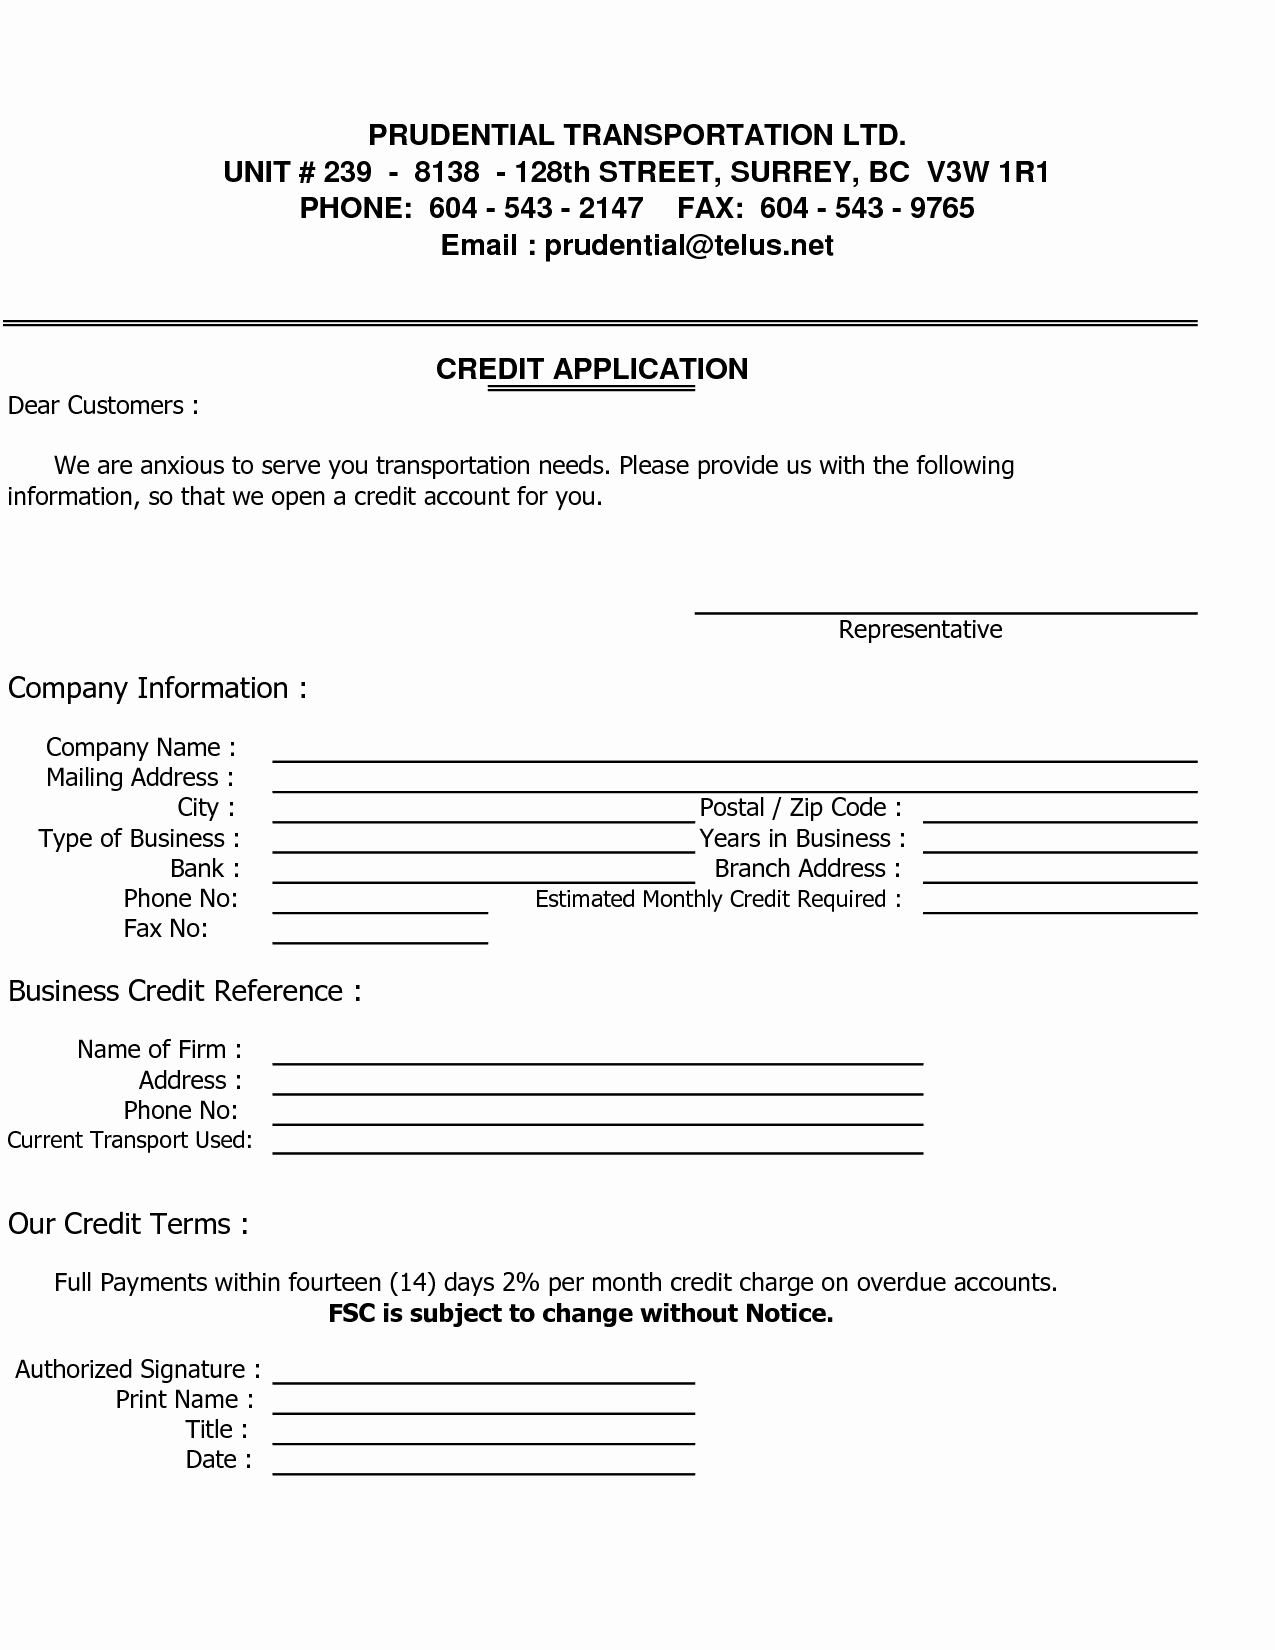 Business Credit Application form Template New Business Credit Reference Template Free Printable Documents